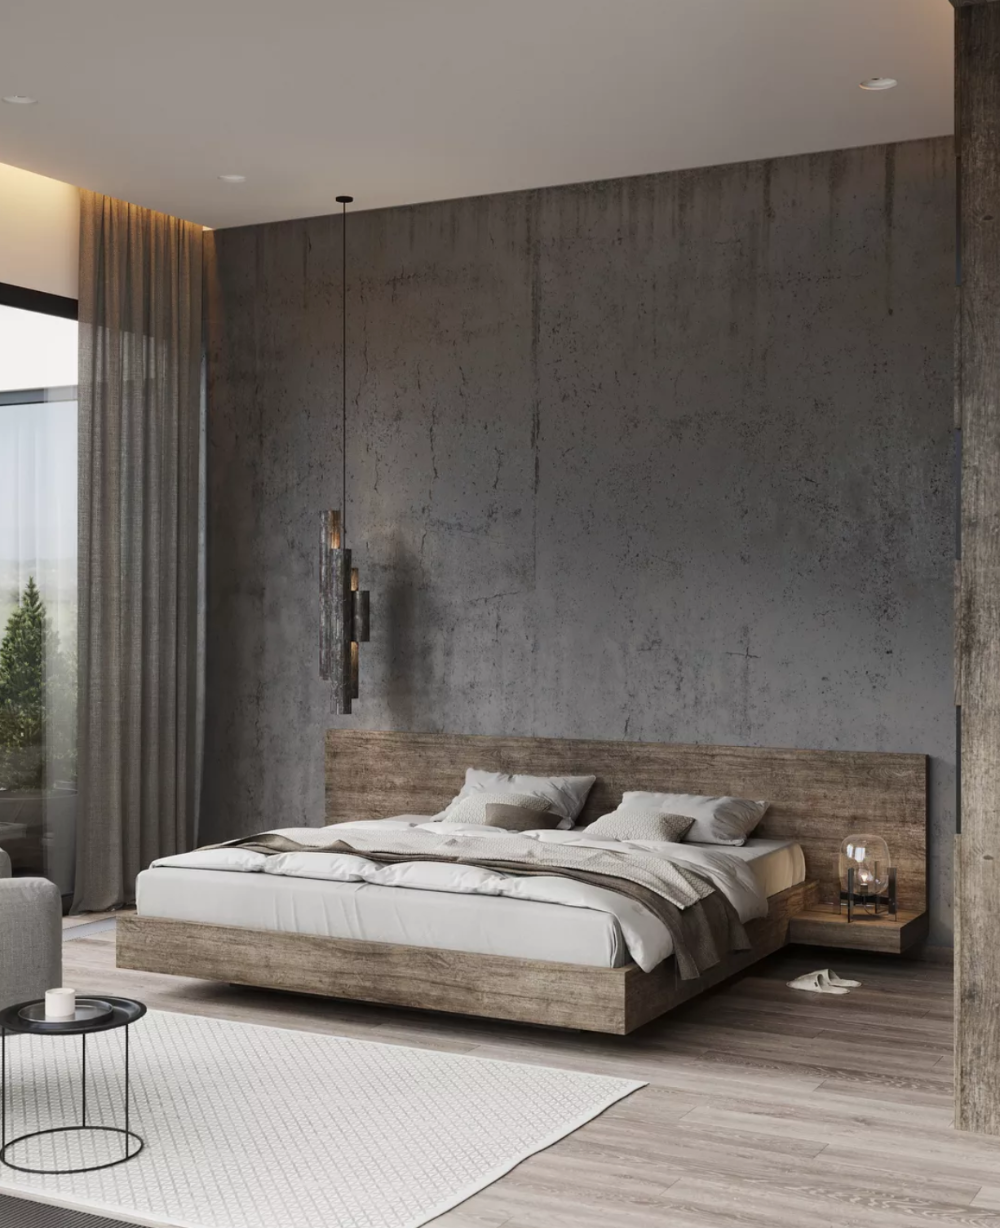 The 15 Most Beautiful Master Bedrooms On Pinterest In 2020